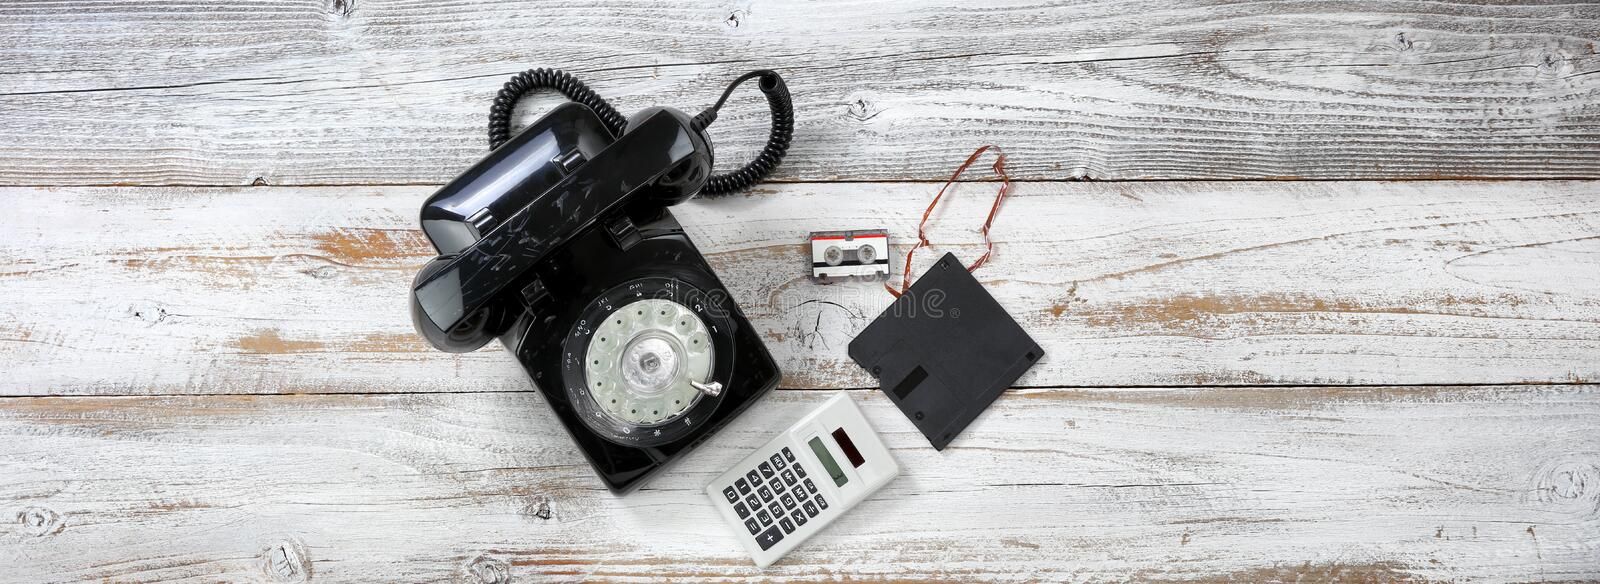 Vintage technology includes rotary dial phone and old data disk and tape storage devices. Vintage technology includes rotary dial phone and old data storage stock photo